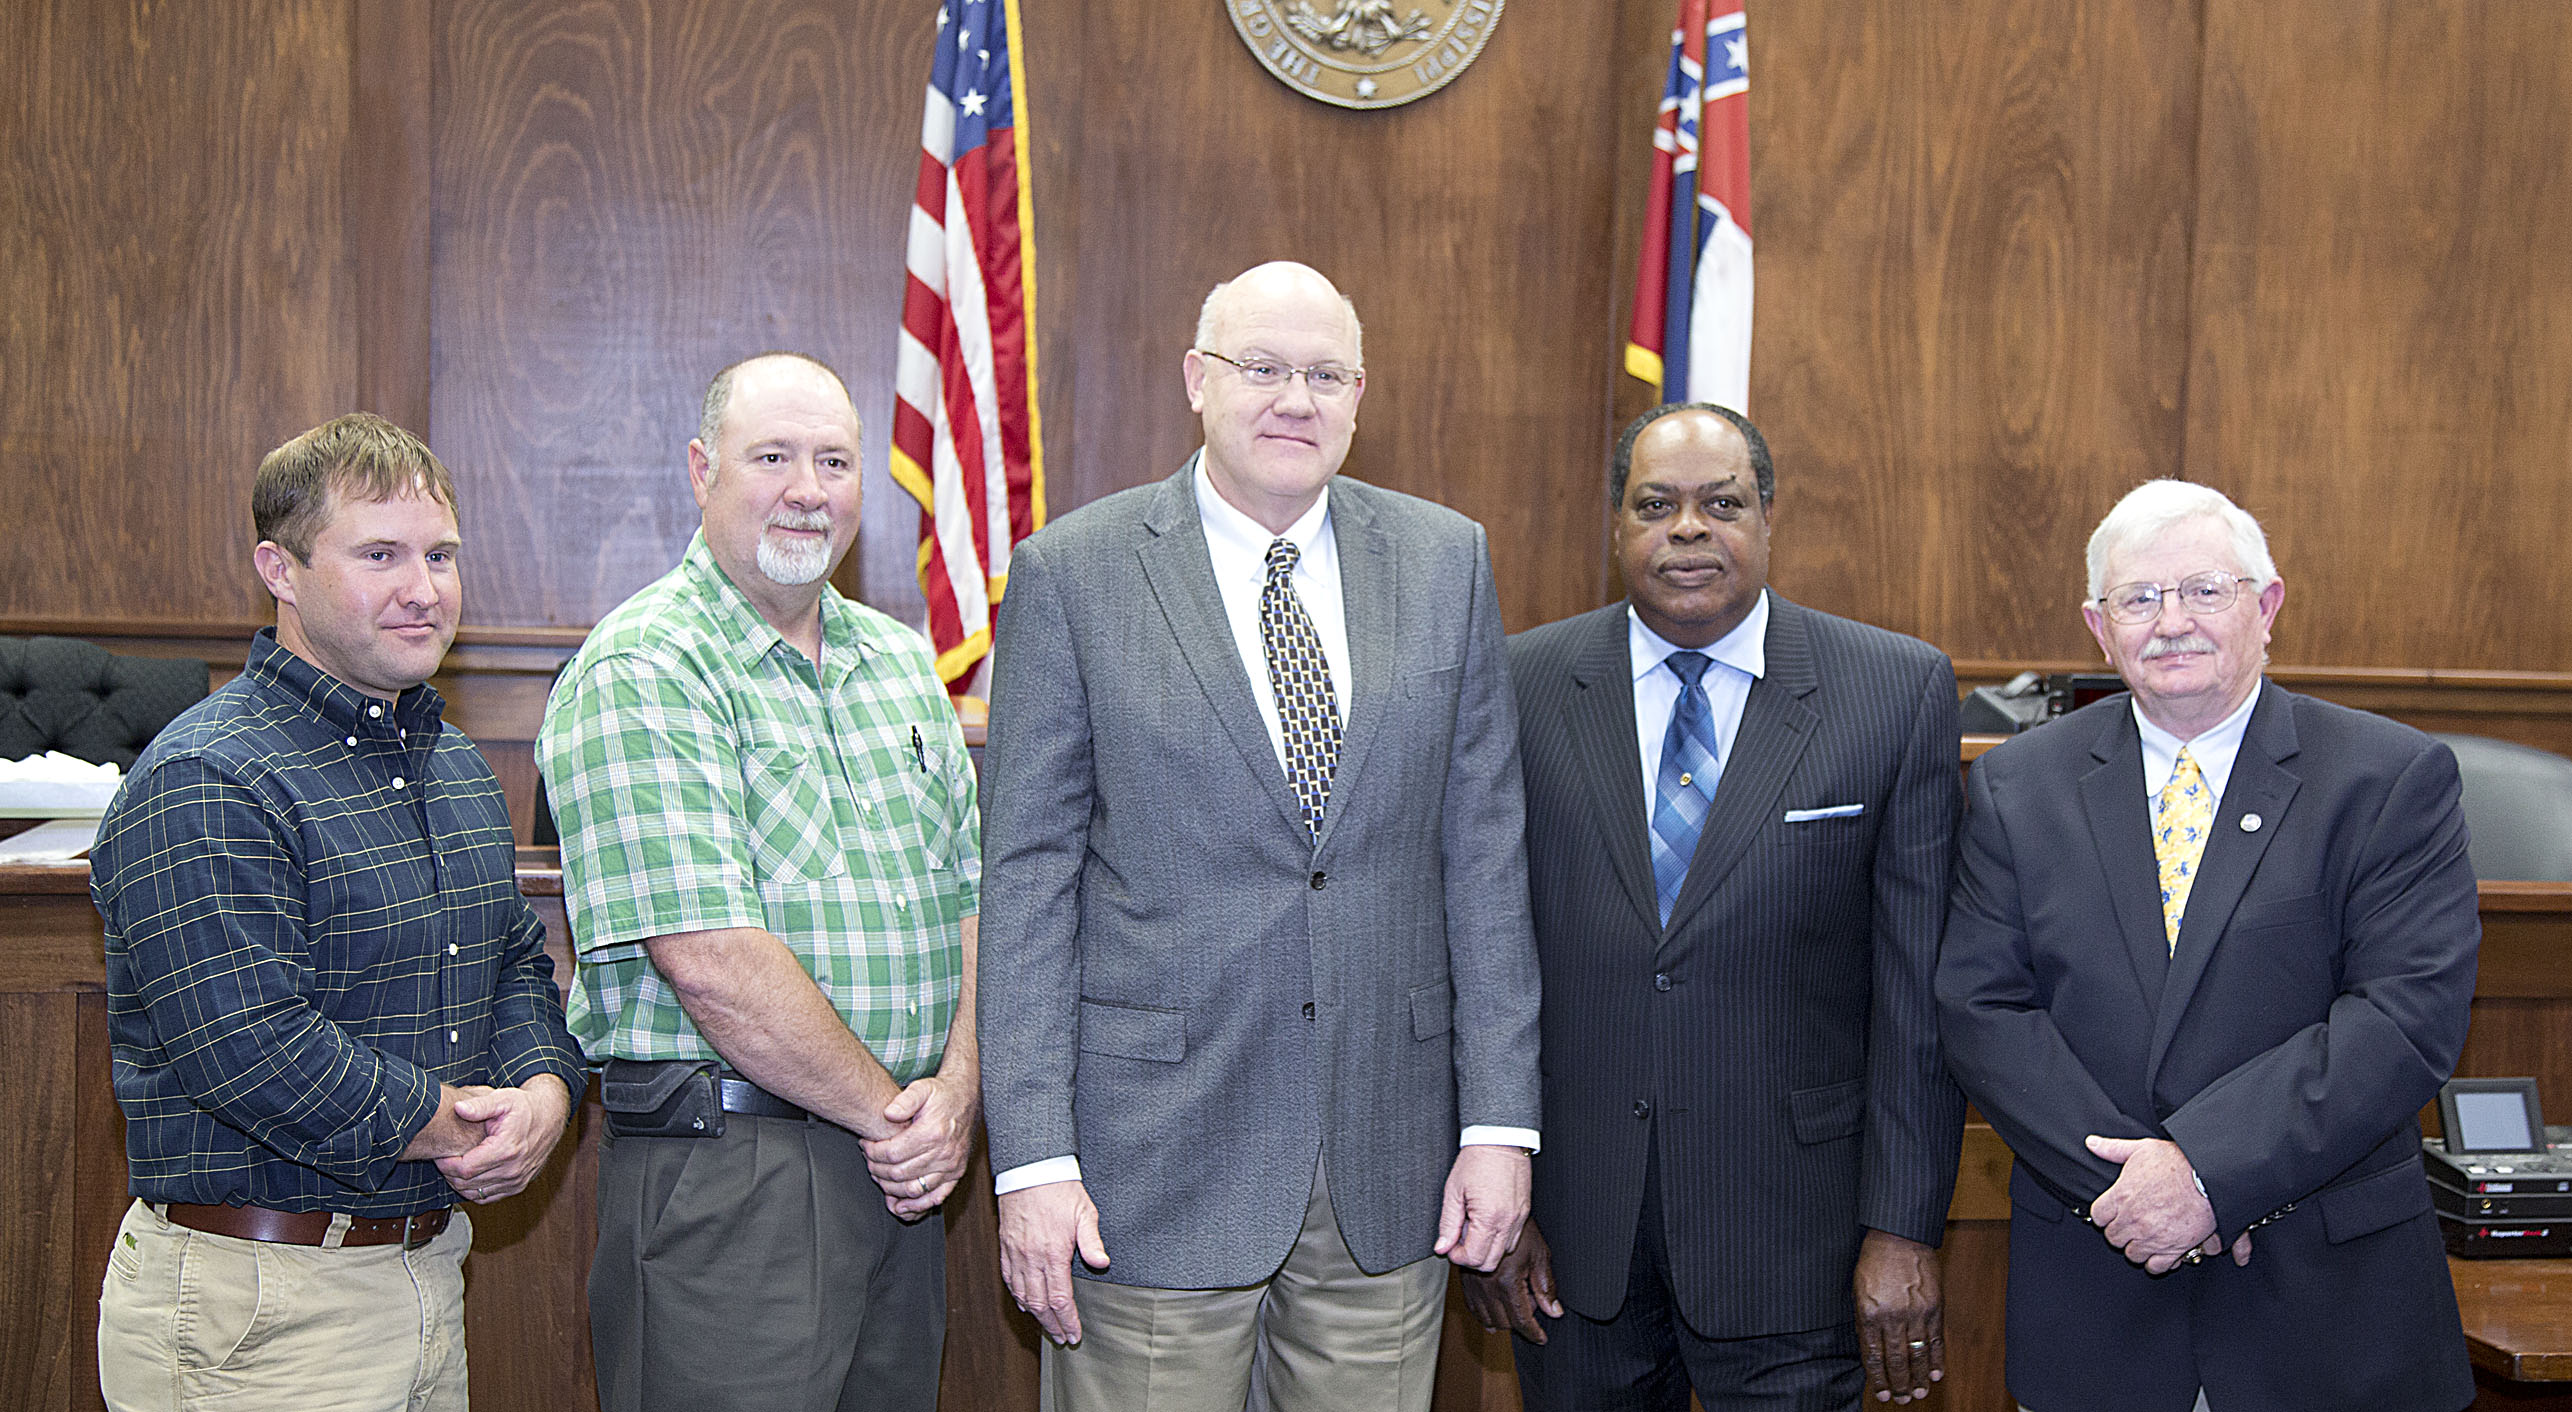 The newly elected Scott County Board of Education, April 21, 2015.